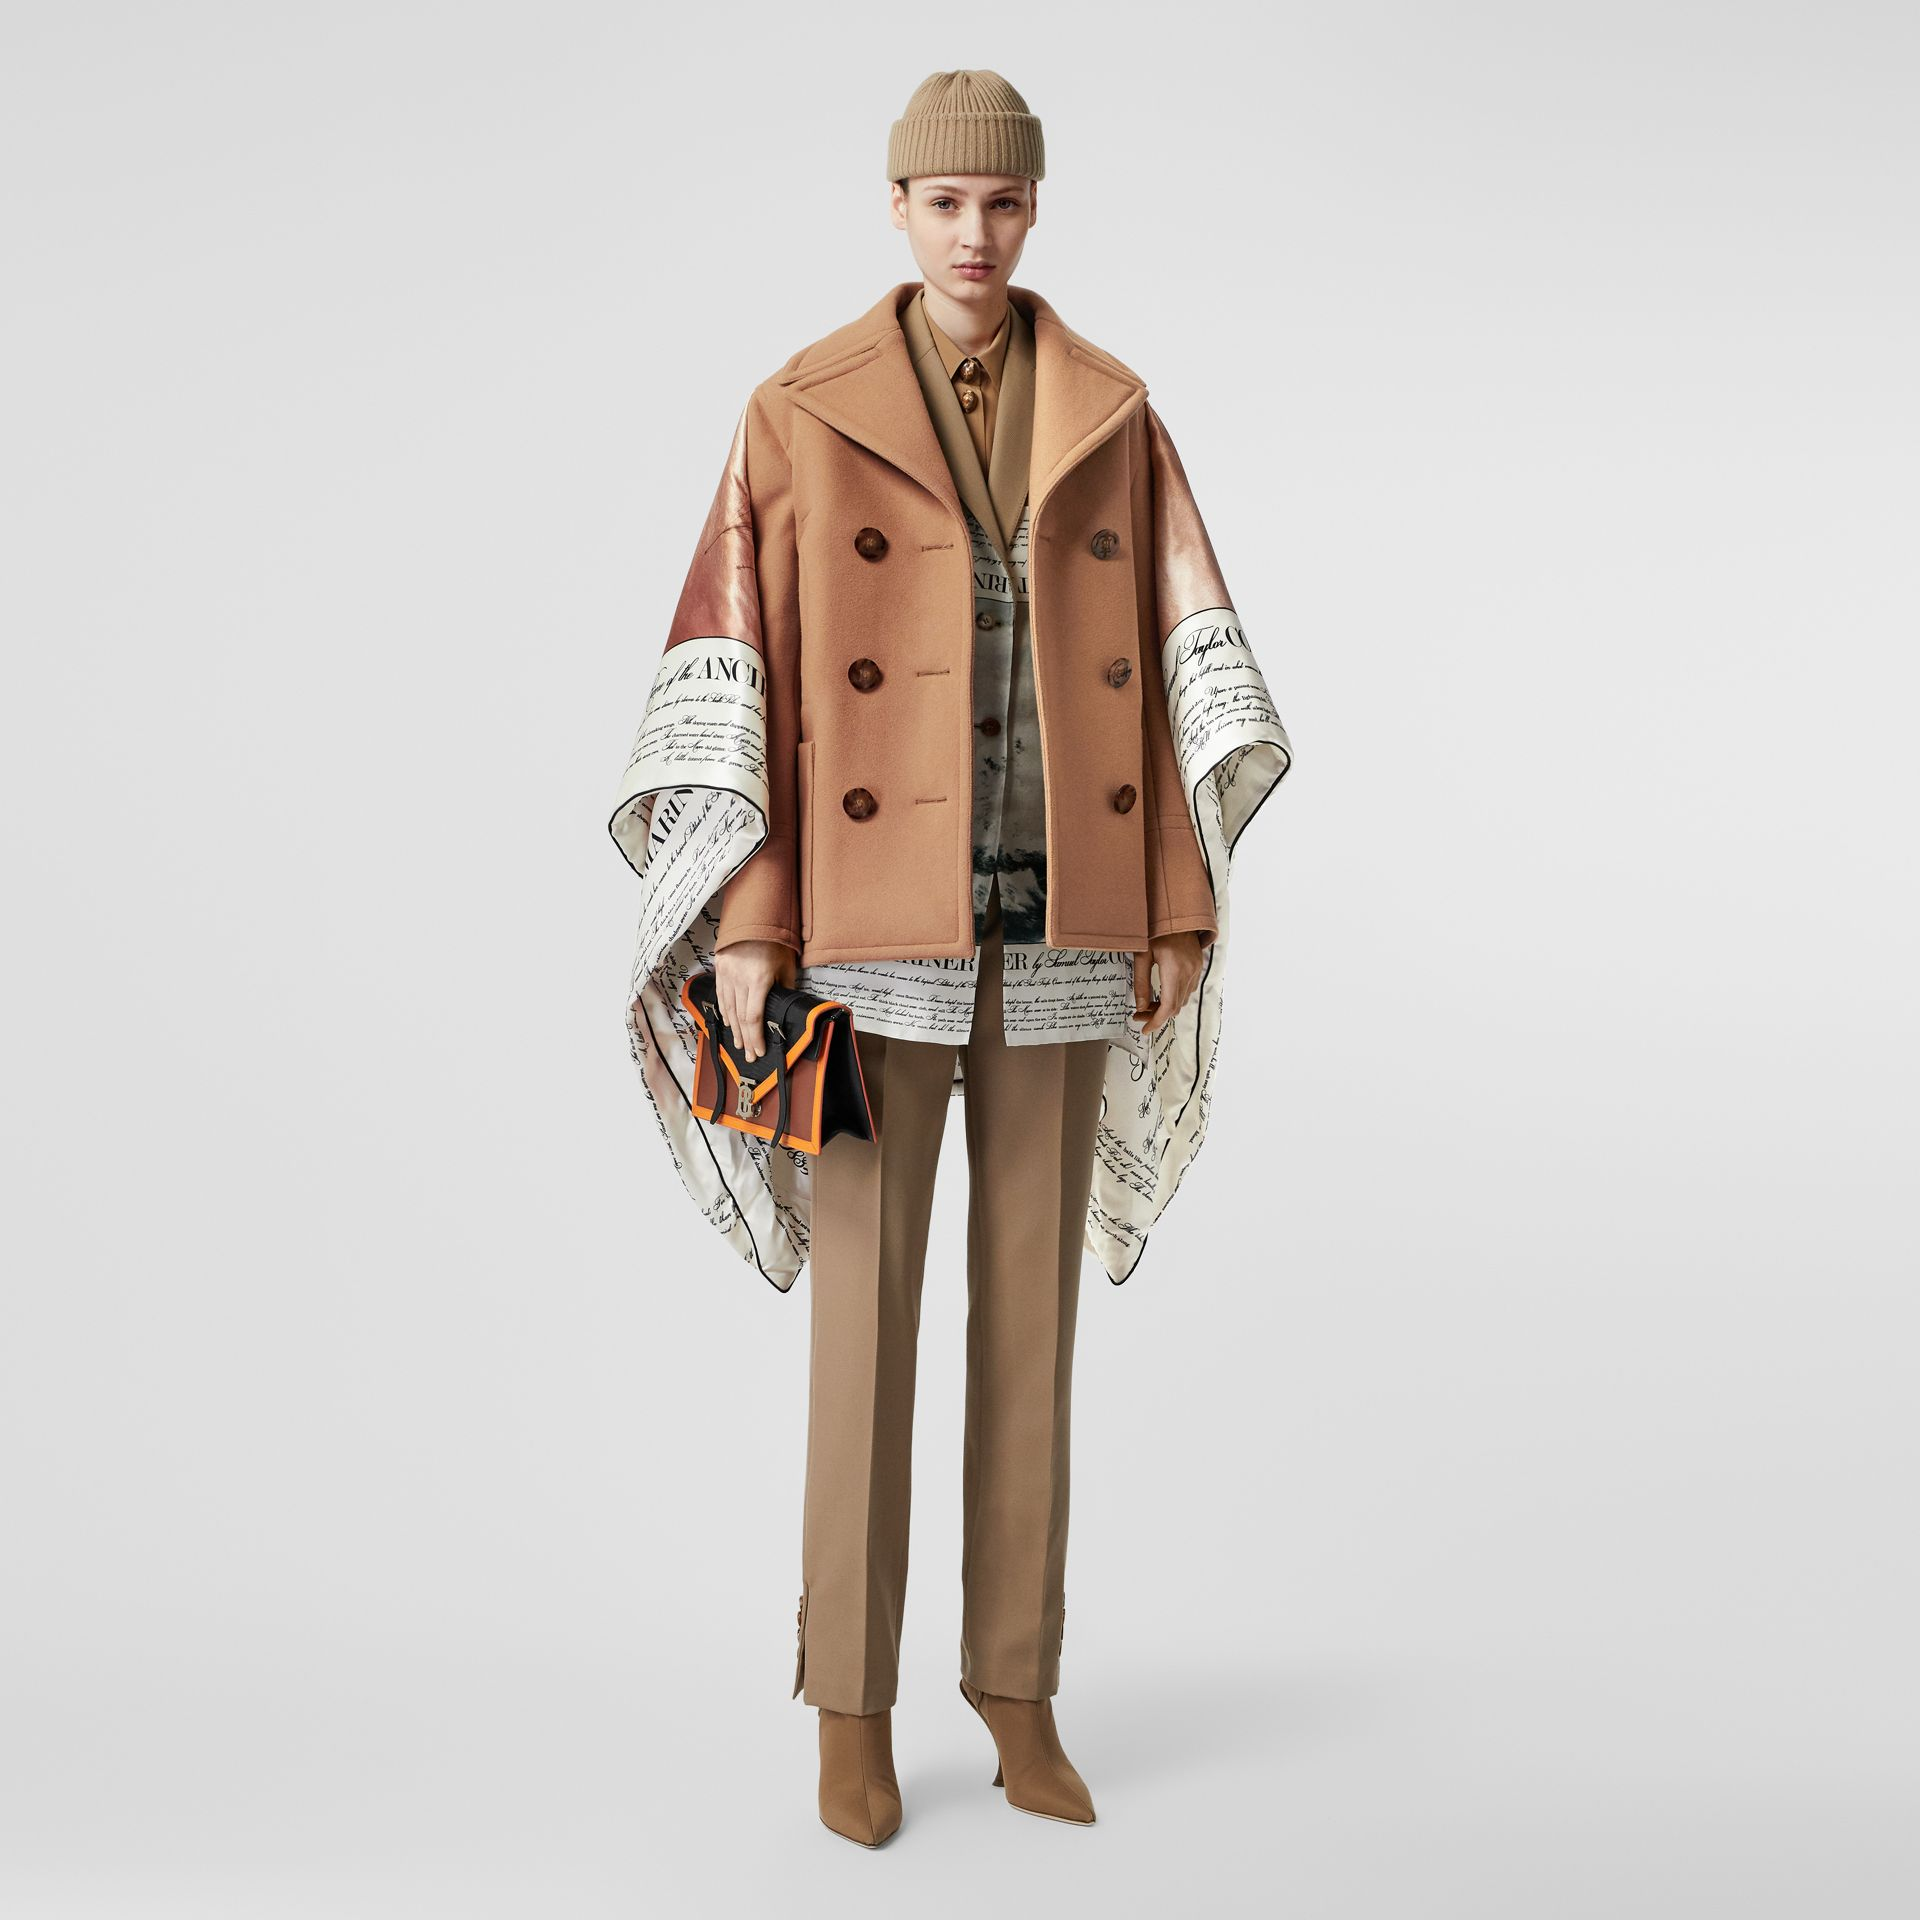 Mariner Print Blanket Detail Technical Wool Pea Coat in Warm Camel - Women | Burberry - gallery image 1